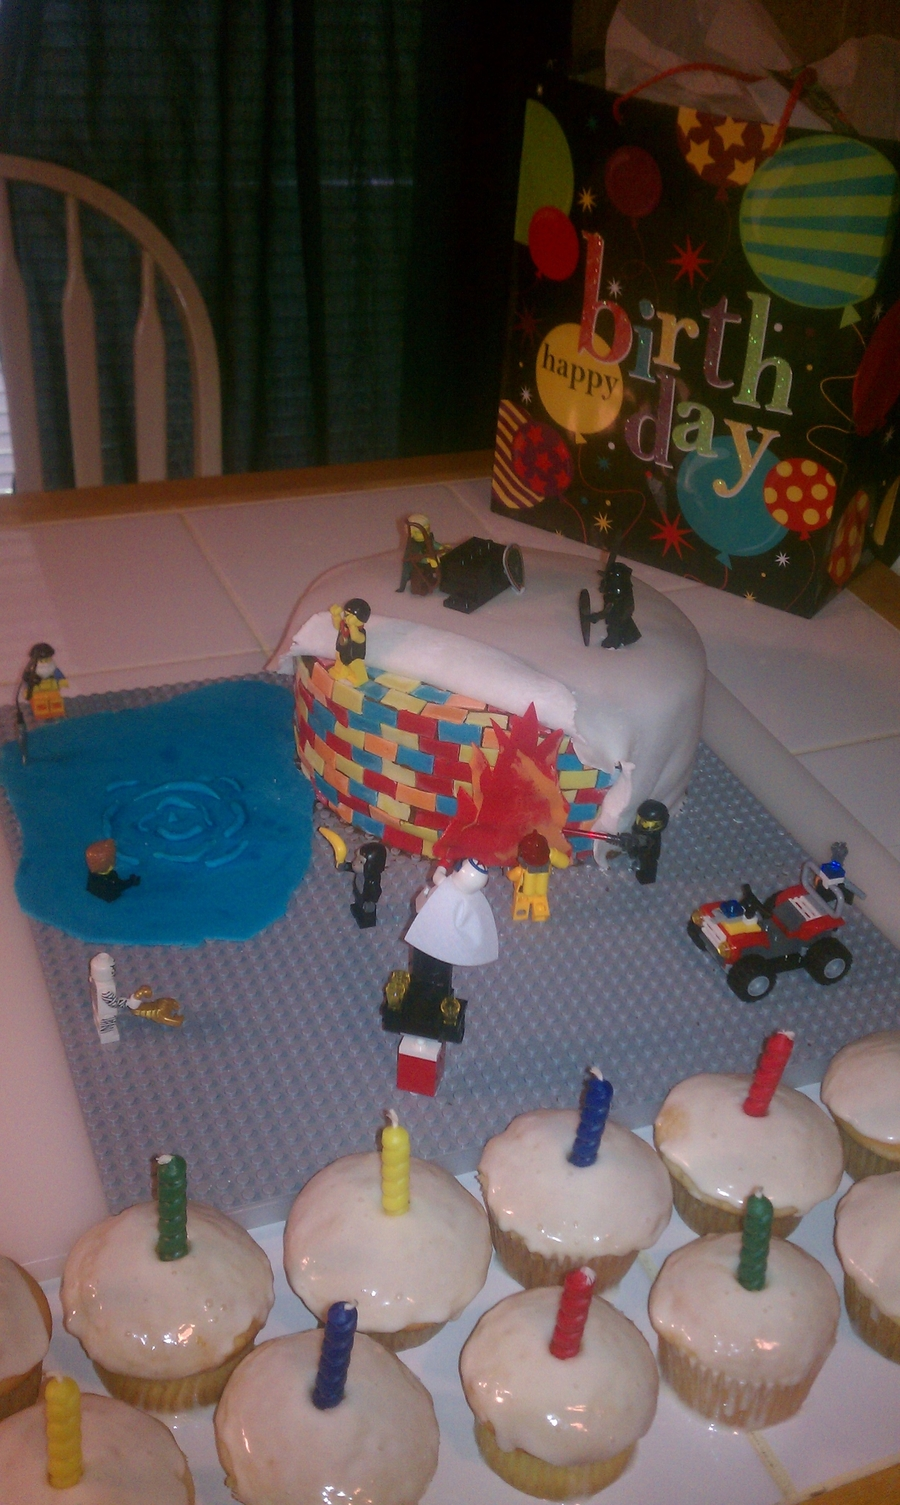 Lego Fun  on Cake Central